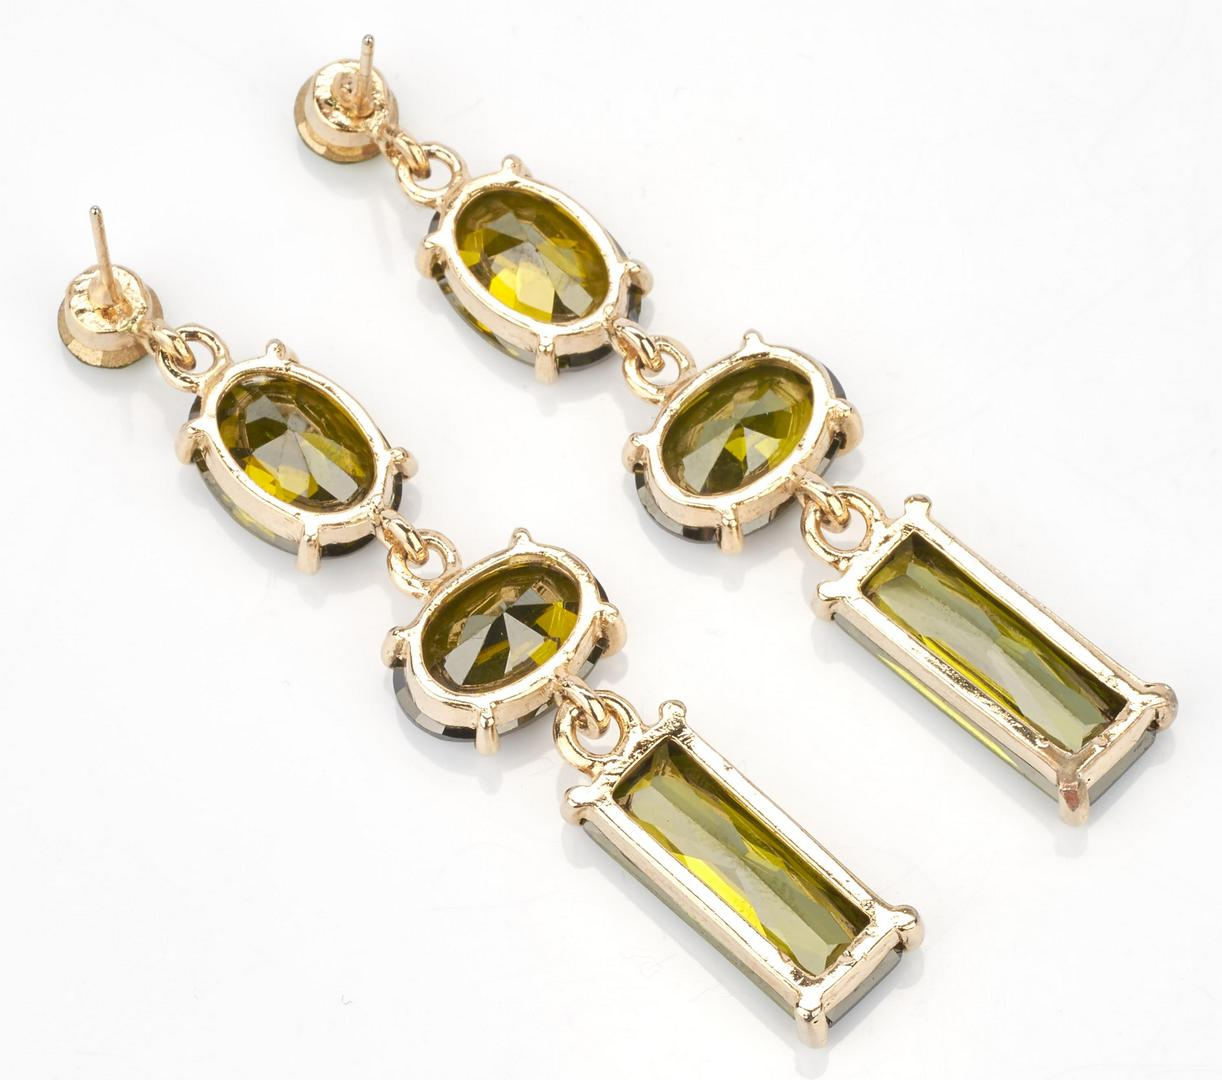 Lot 922: 3 Pairs of Ladies Gemstone Earrings